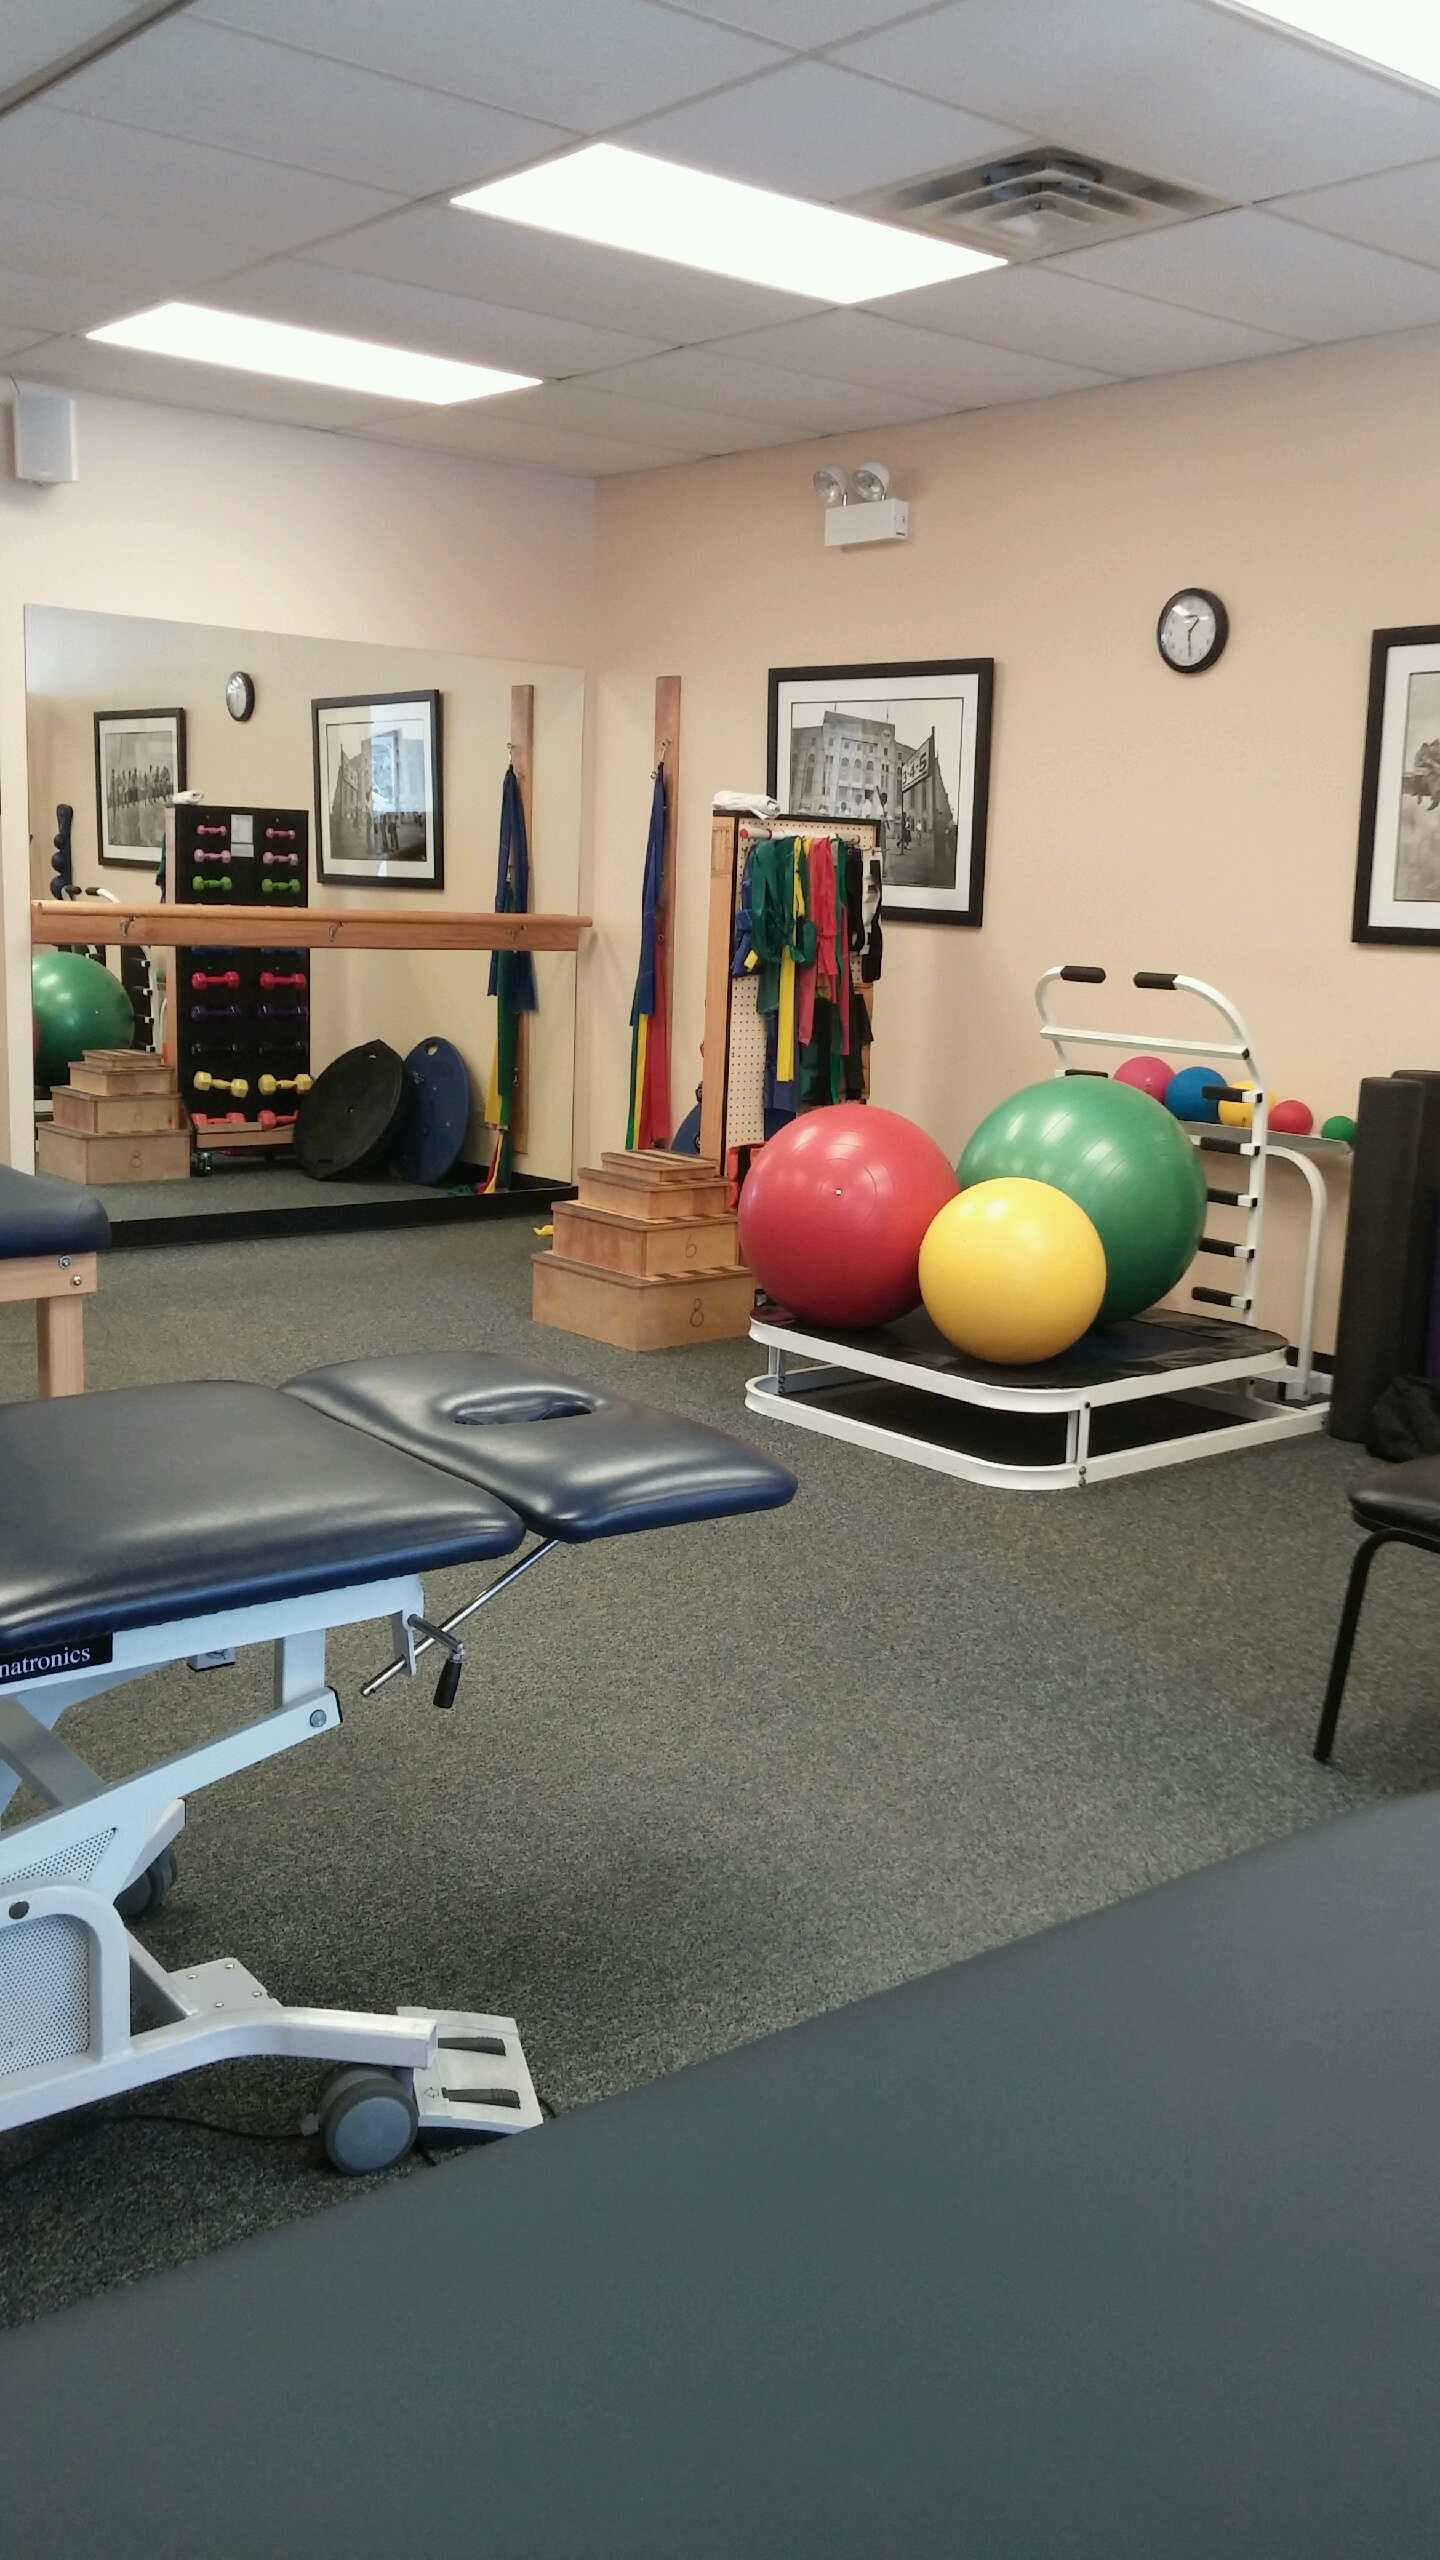 Glenview california physical therapy - Lakeview West 7 Lakeview West 4